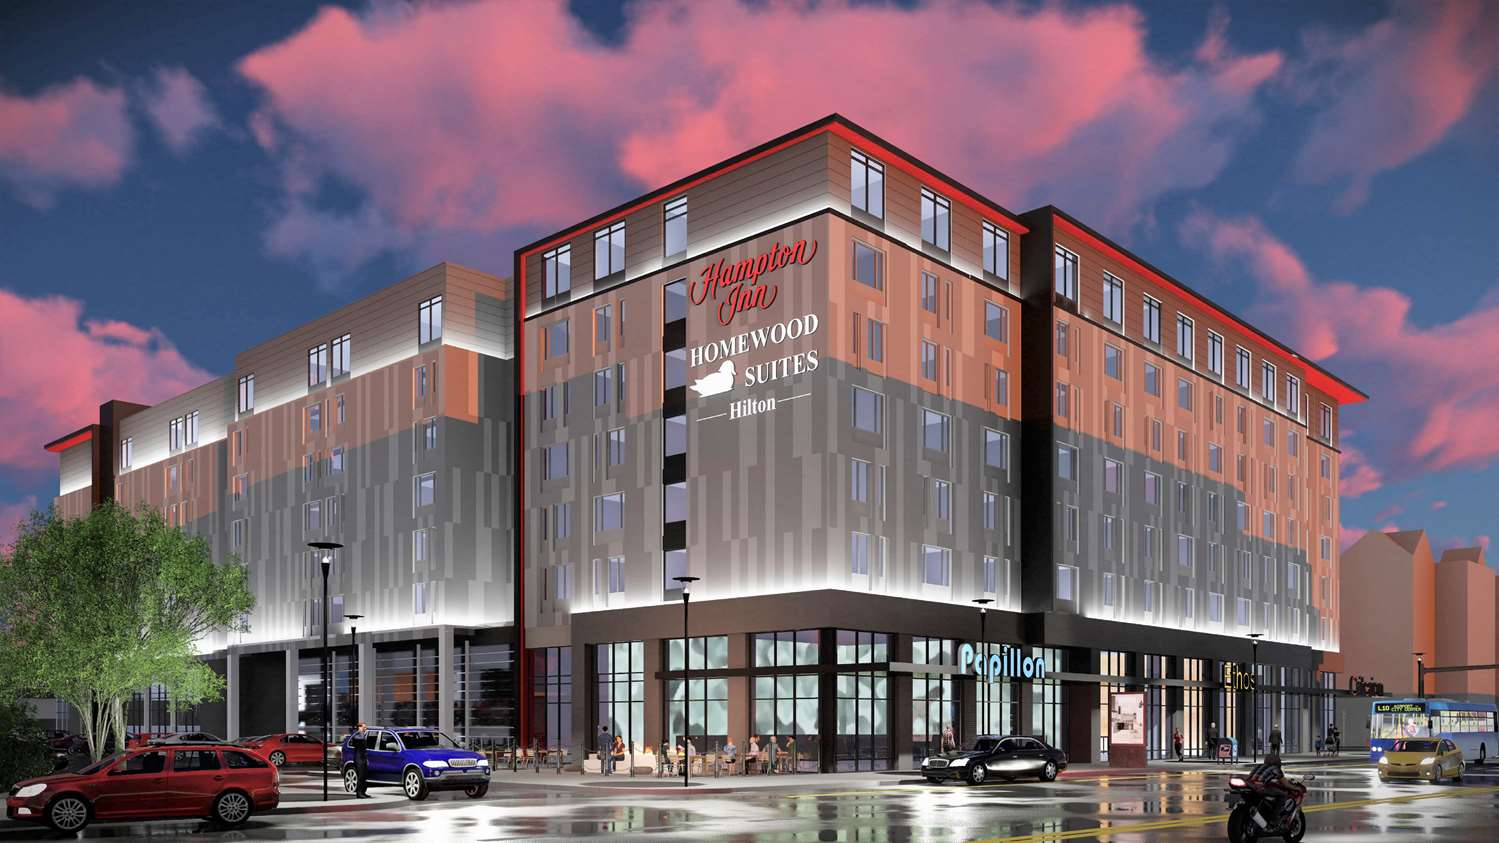 Homewood Suites by Hilton Indianapolis Canal IUPU